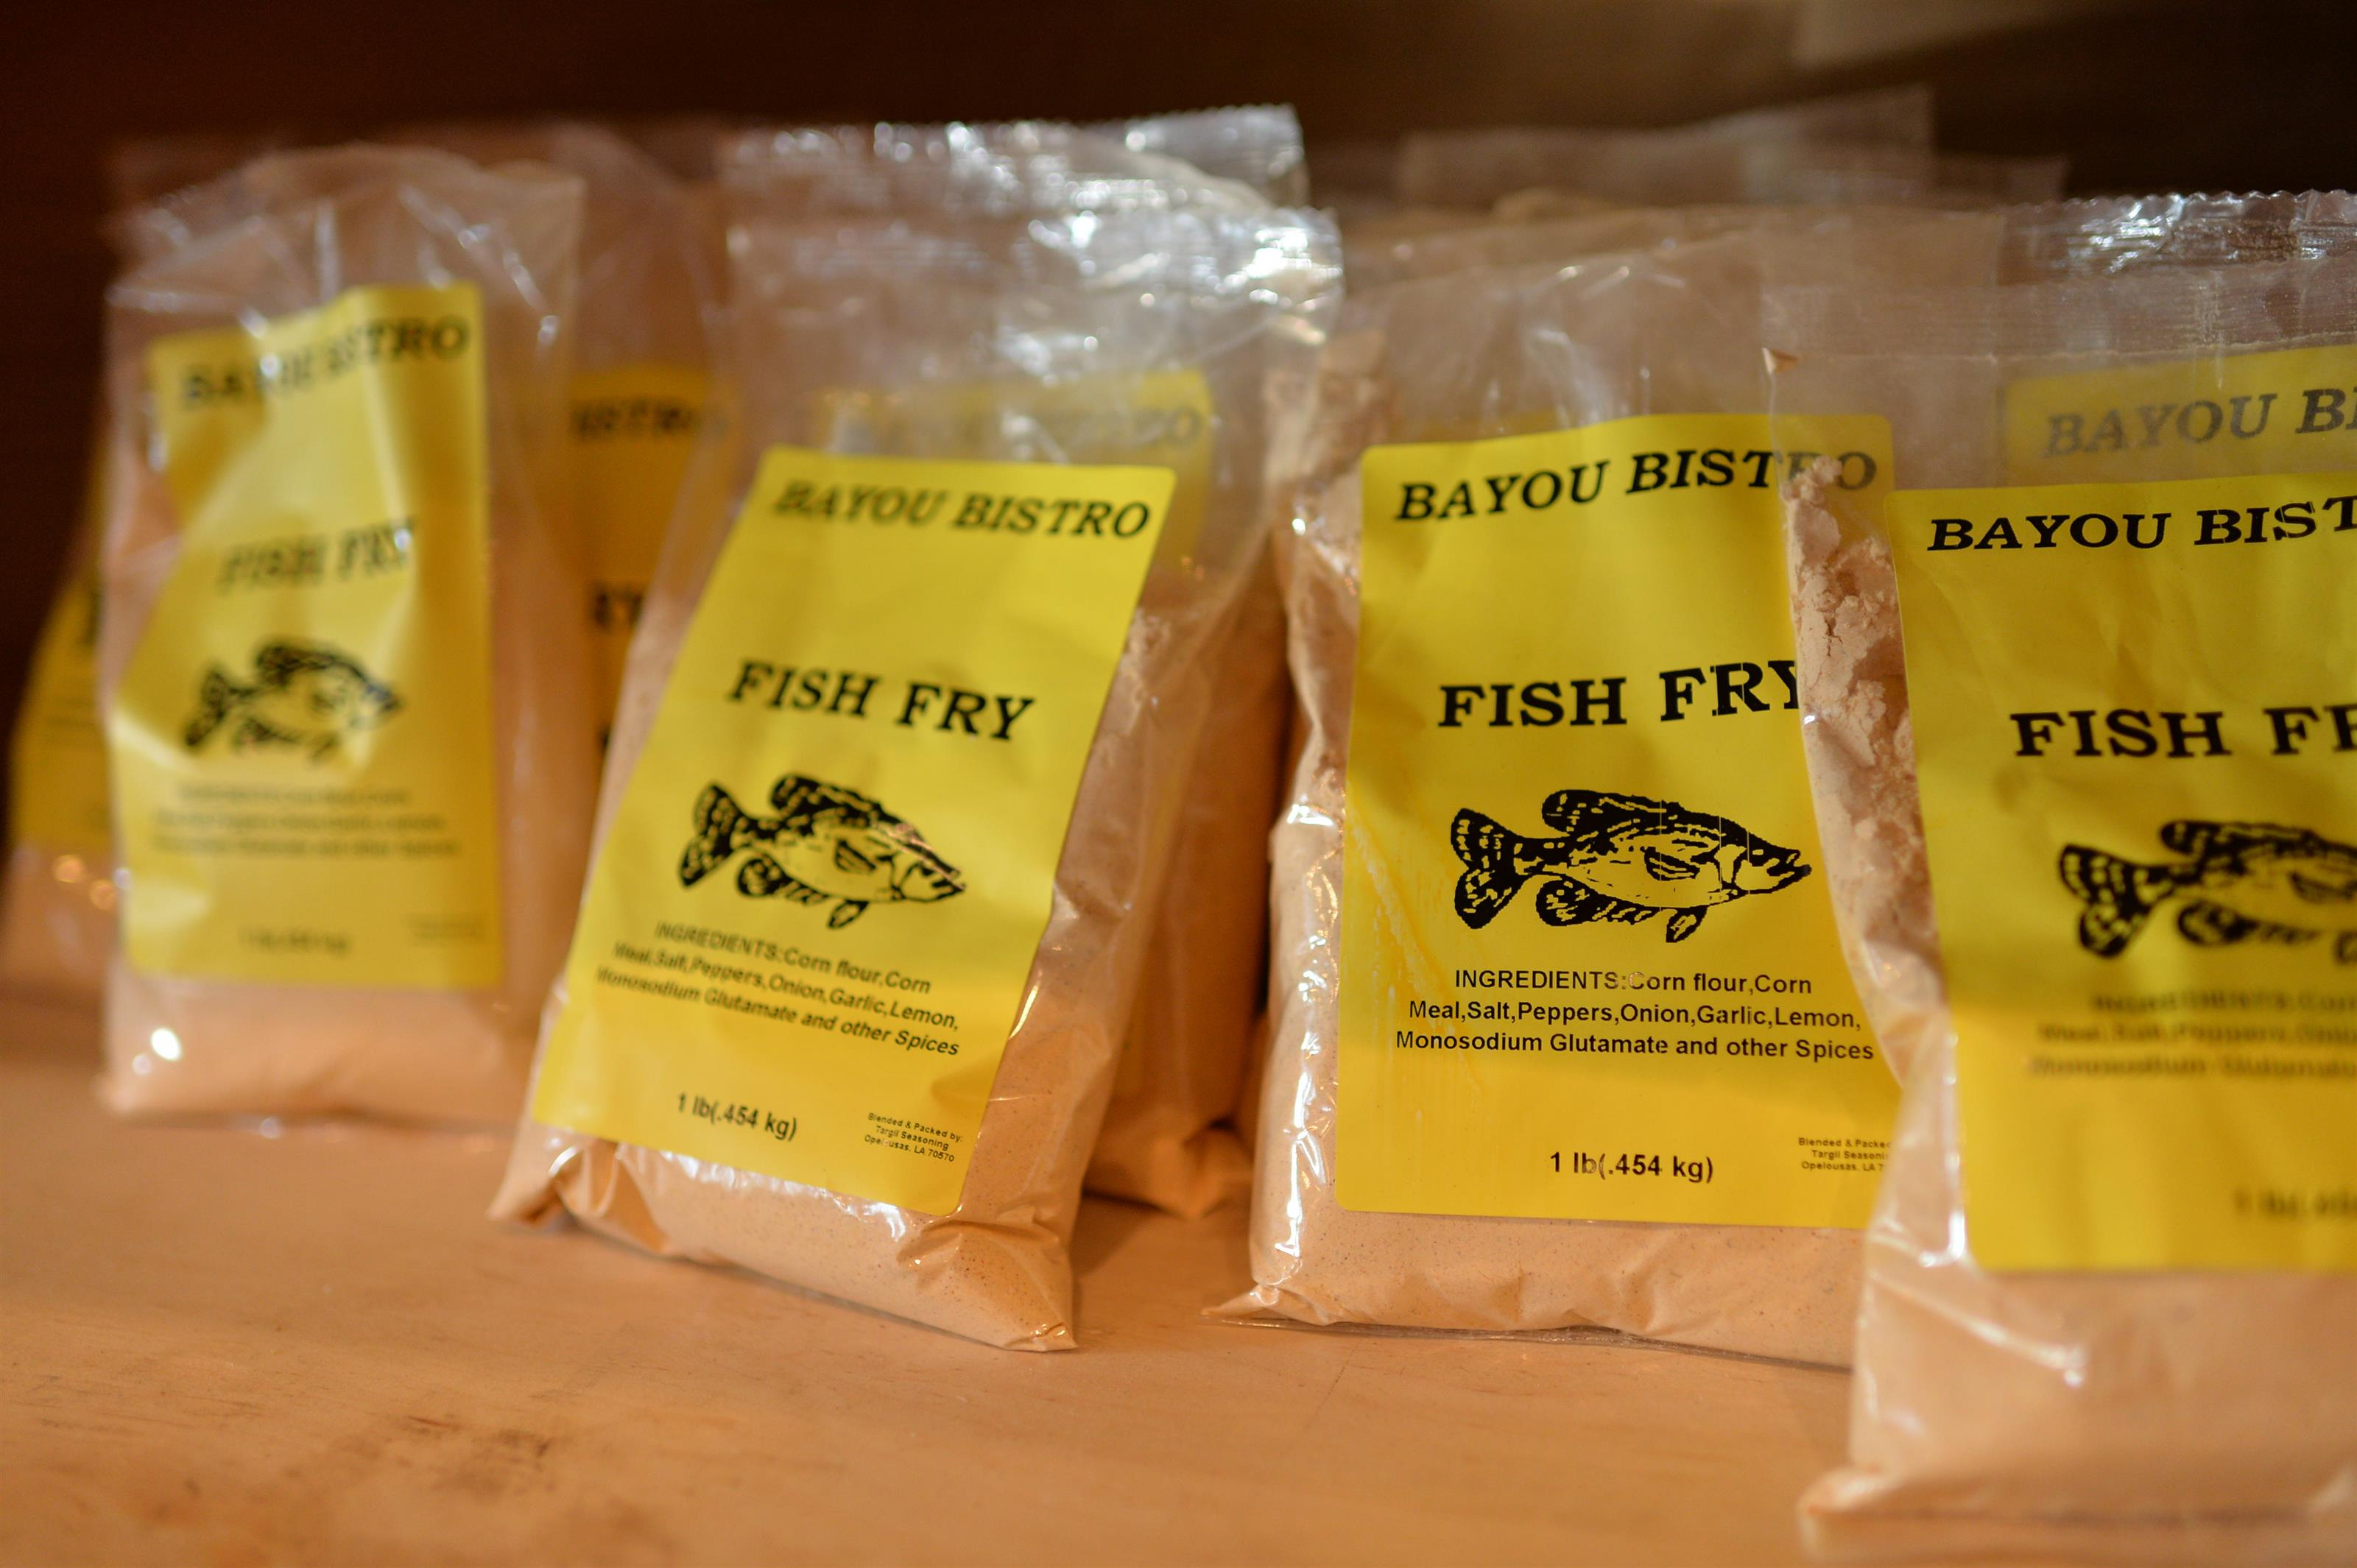 bayou bistro fish fry bags lined up on a shelf